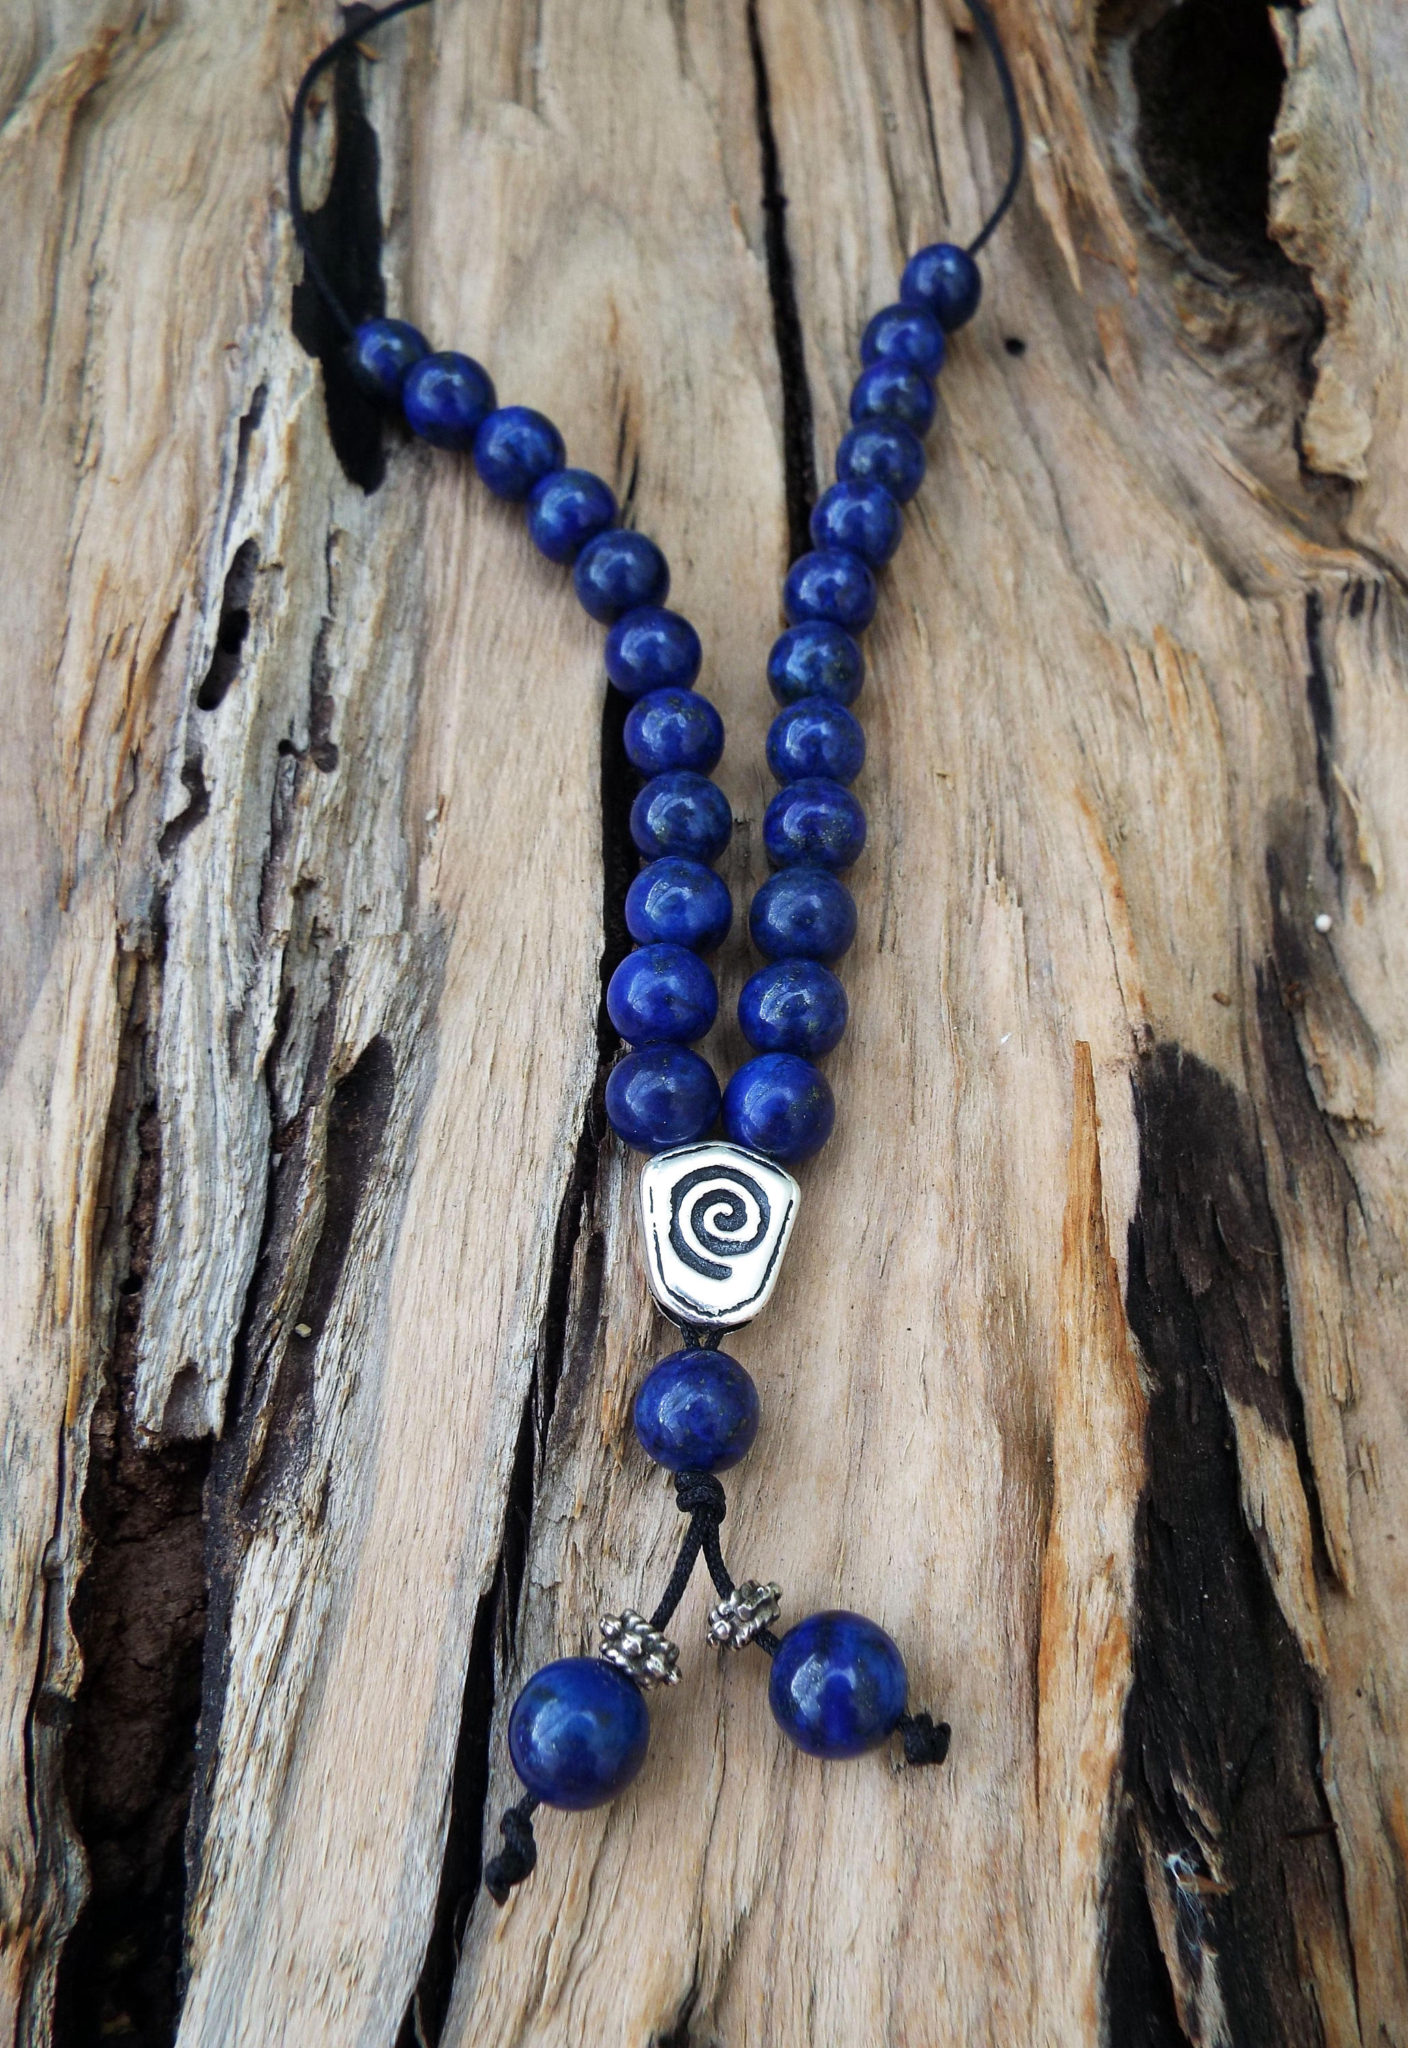 Komboloi Greek Worry Beads Lapis Lazuli Prayer Beads Rosary Beads Turkish Tasbih Handmade Gemstone